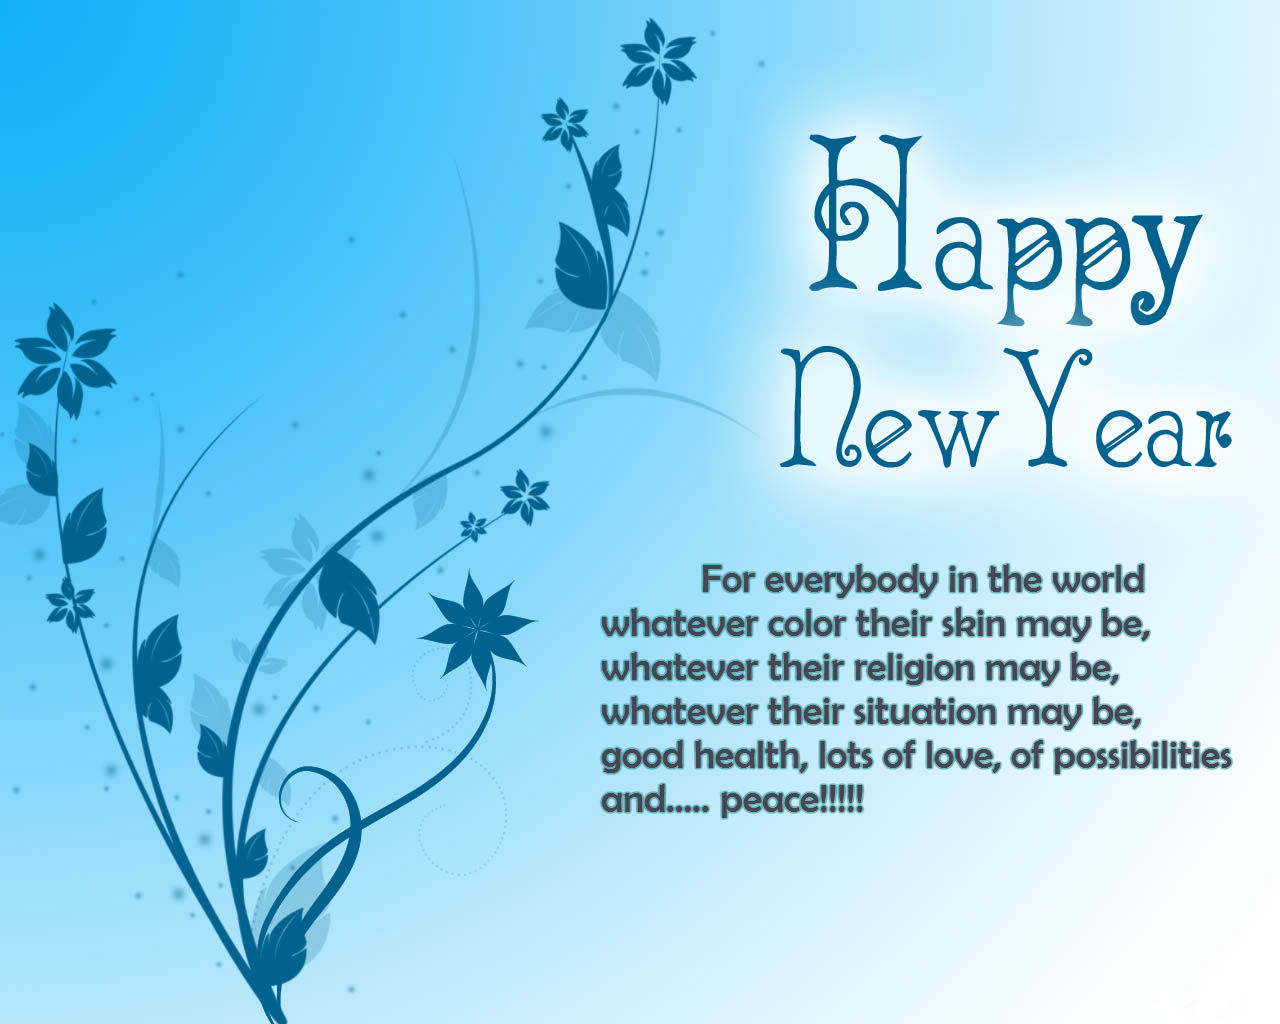 2013 New Year Wishes Wallpapers And Sms. 1280 x 1024.Nice Happy New Year Text Messages